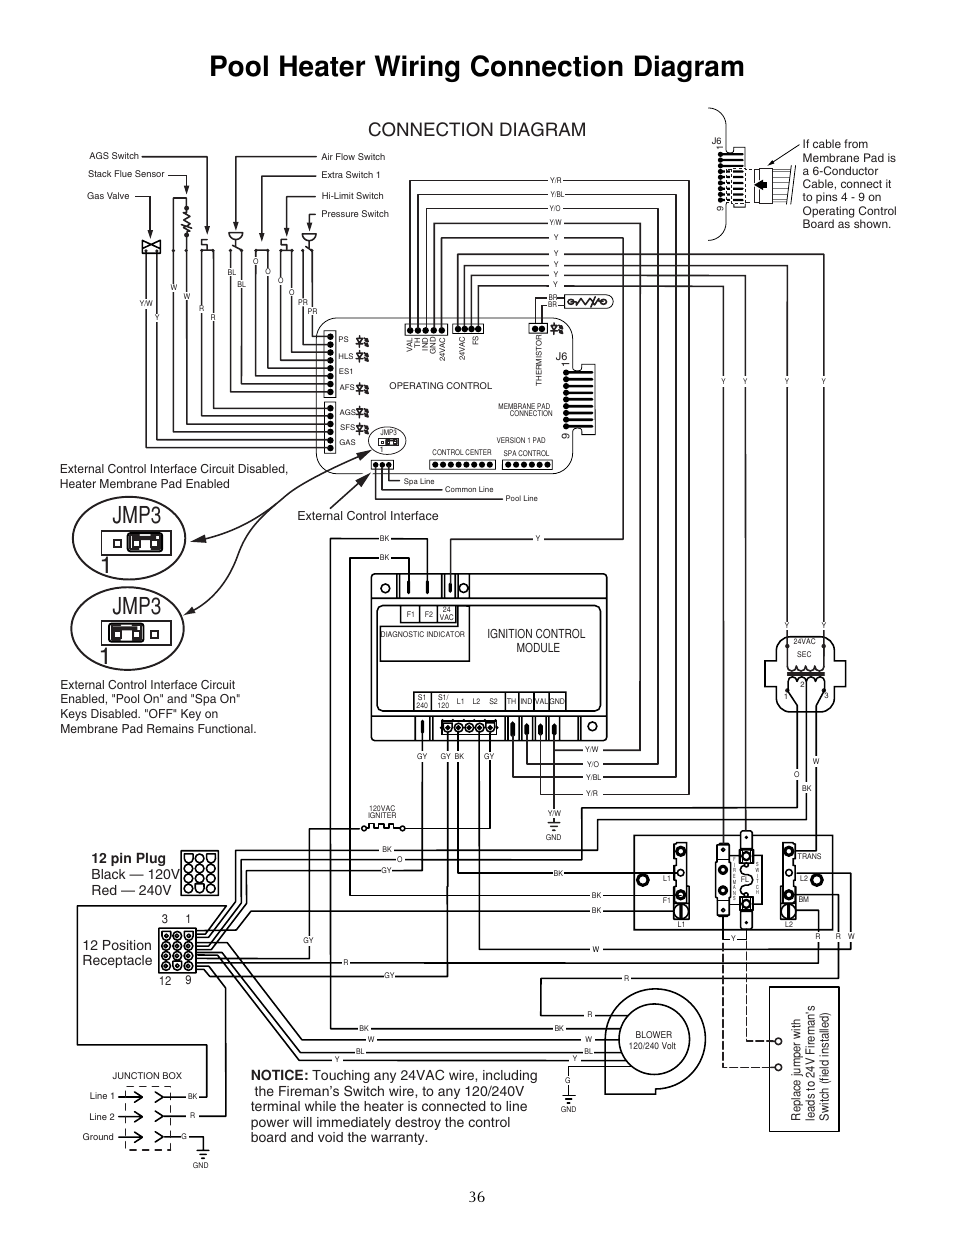 Pool Heater Wiring Connection Diagram Jmp3 1 Singer Sta Rite Sr333lp User Manual Page 36 38